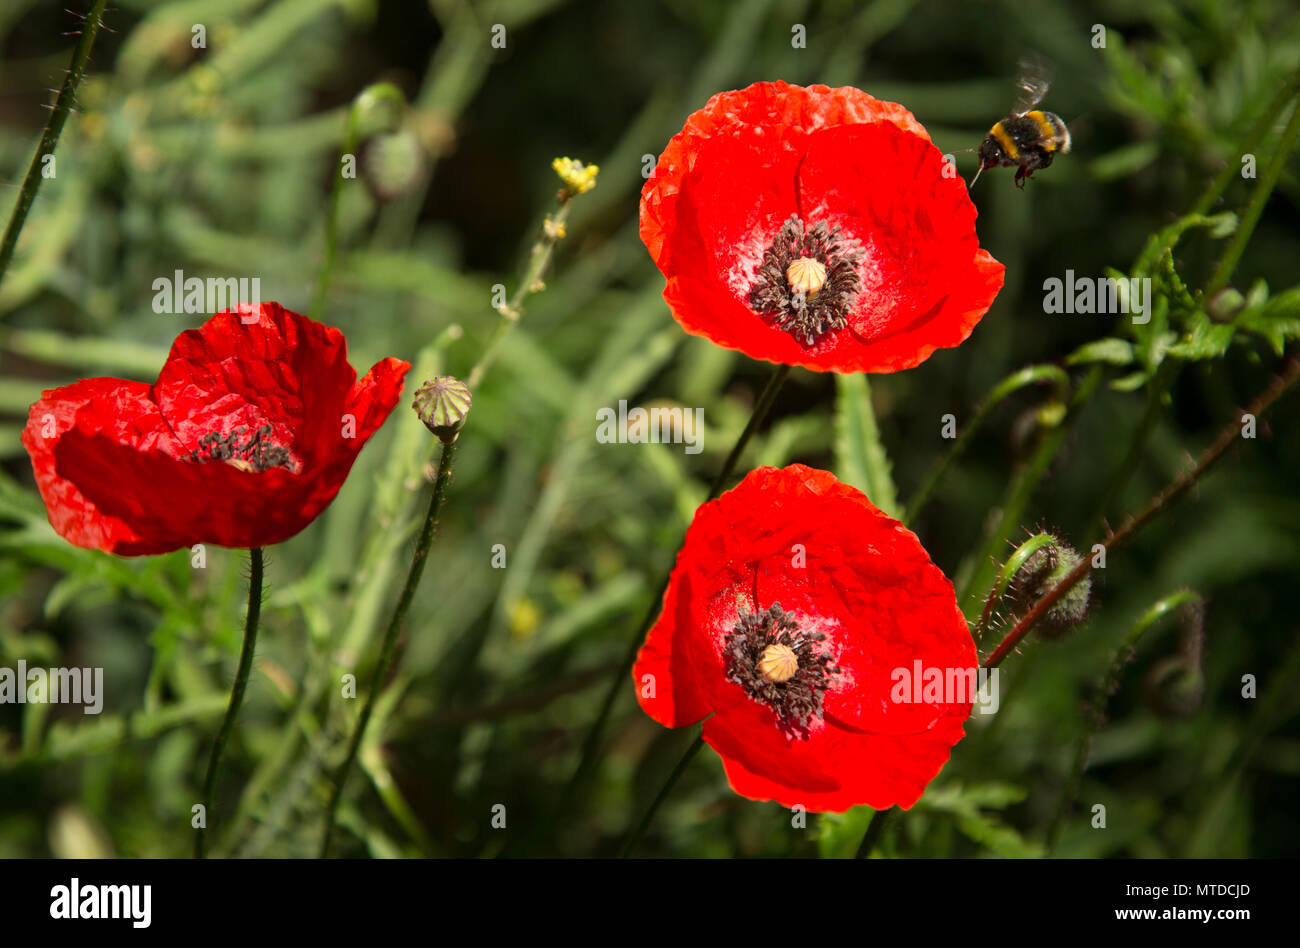 29 May 2018, Germany, Rehda-Wiedenbrueck: A bumblebee approaches a poppy on a field. Photo: Friso Gentsch/dpa - Stock Image